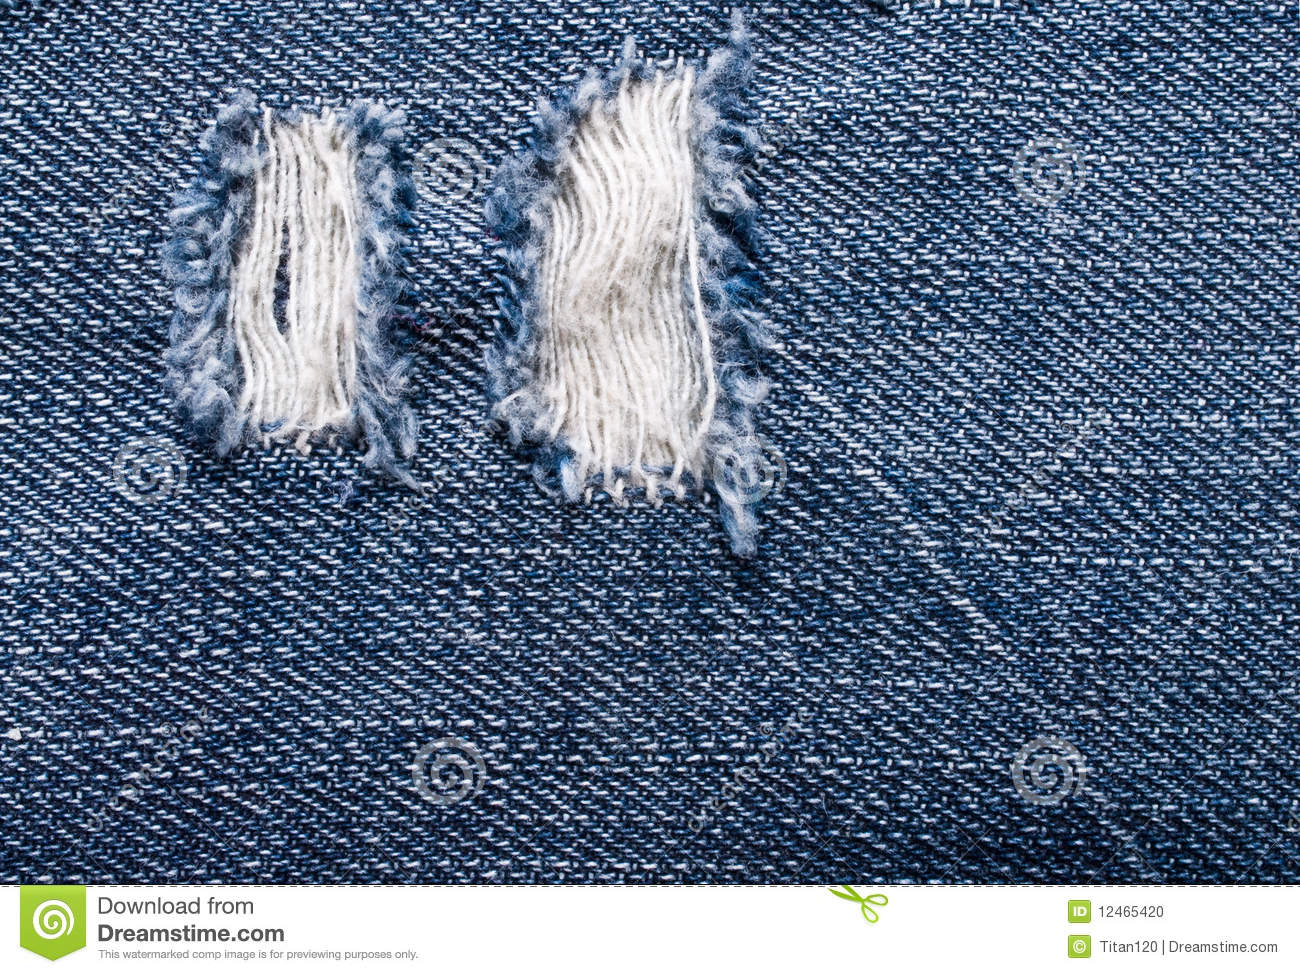 https://thumbs.dreamstime.com/z/background-ripped-jeans-12465420.jpg